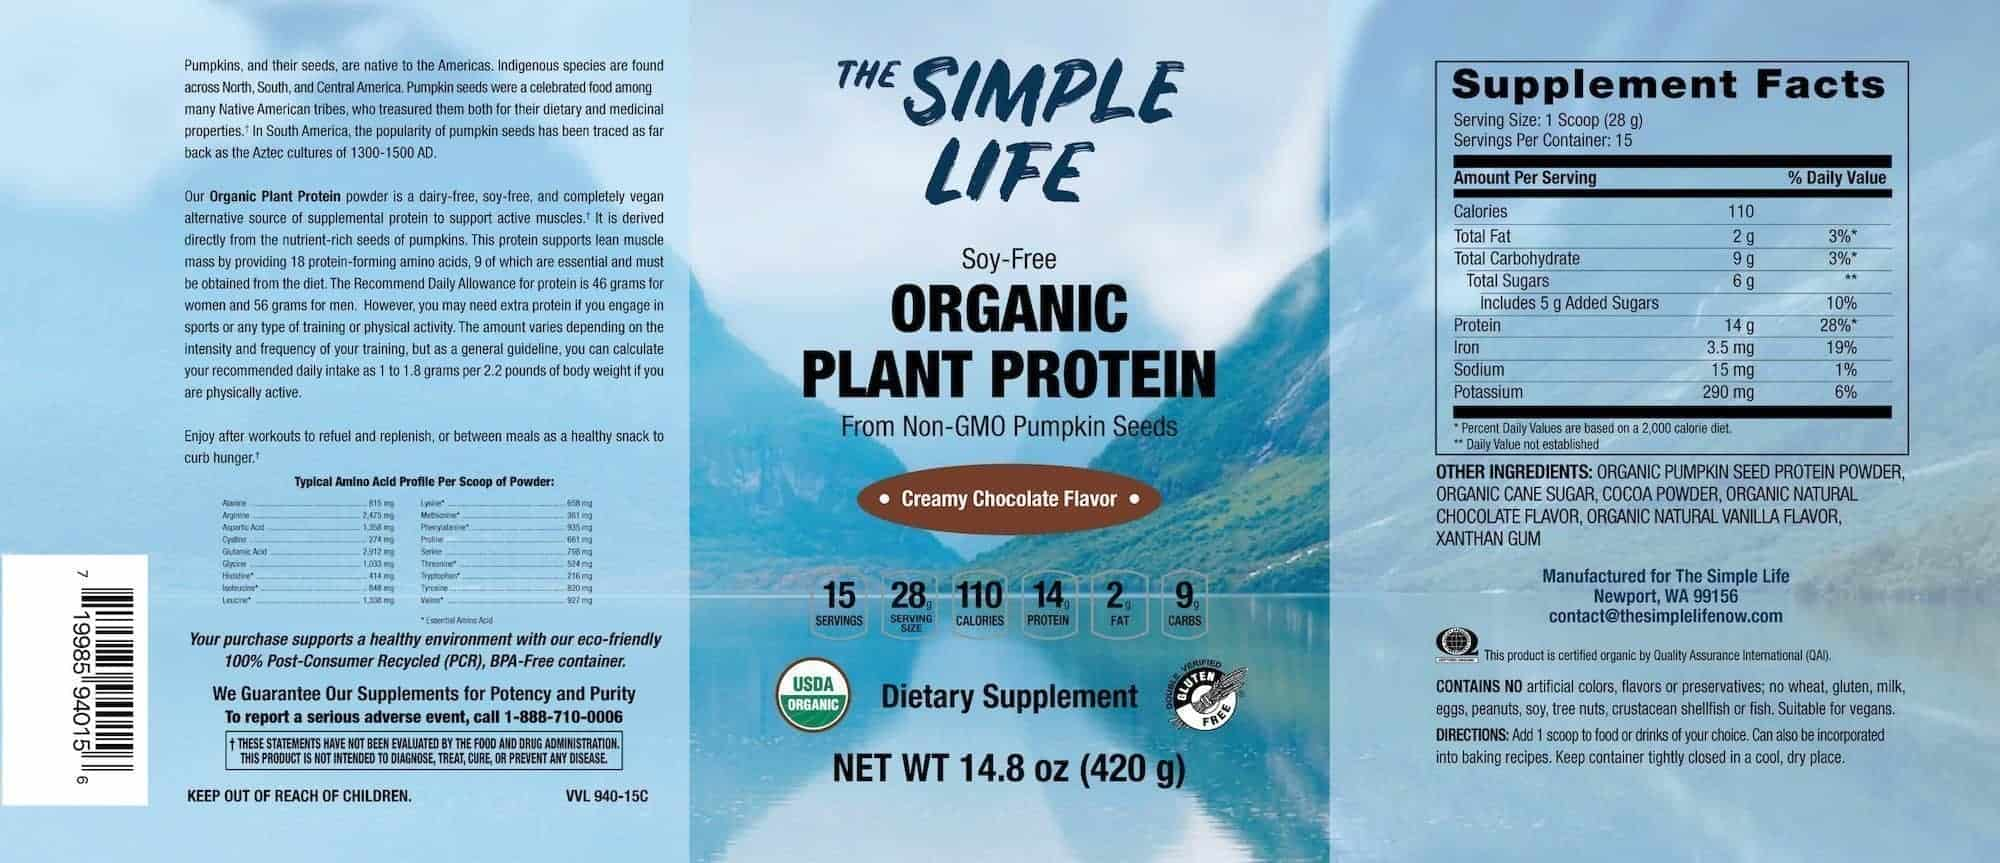 organic pumpkin protein powder label